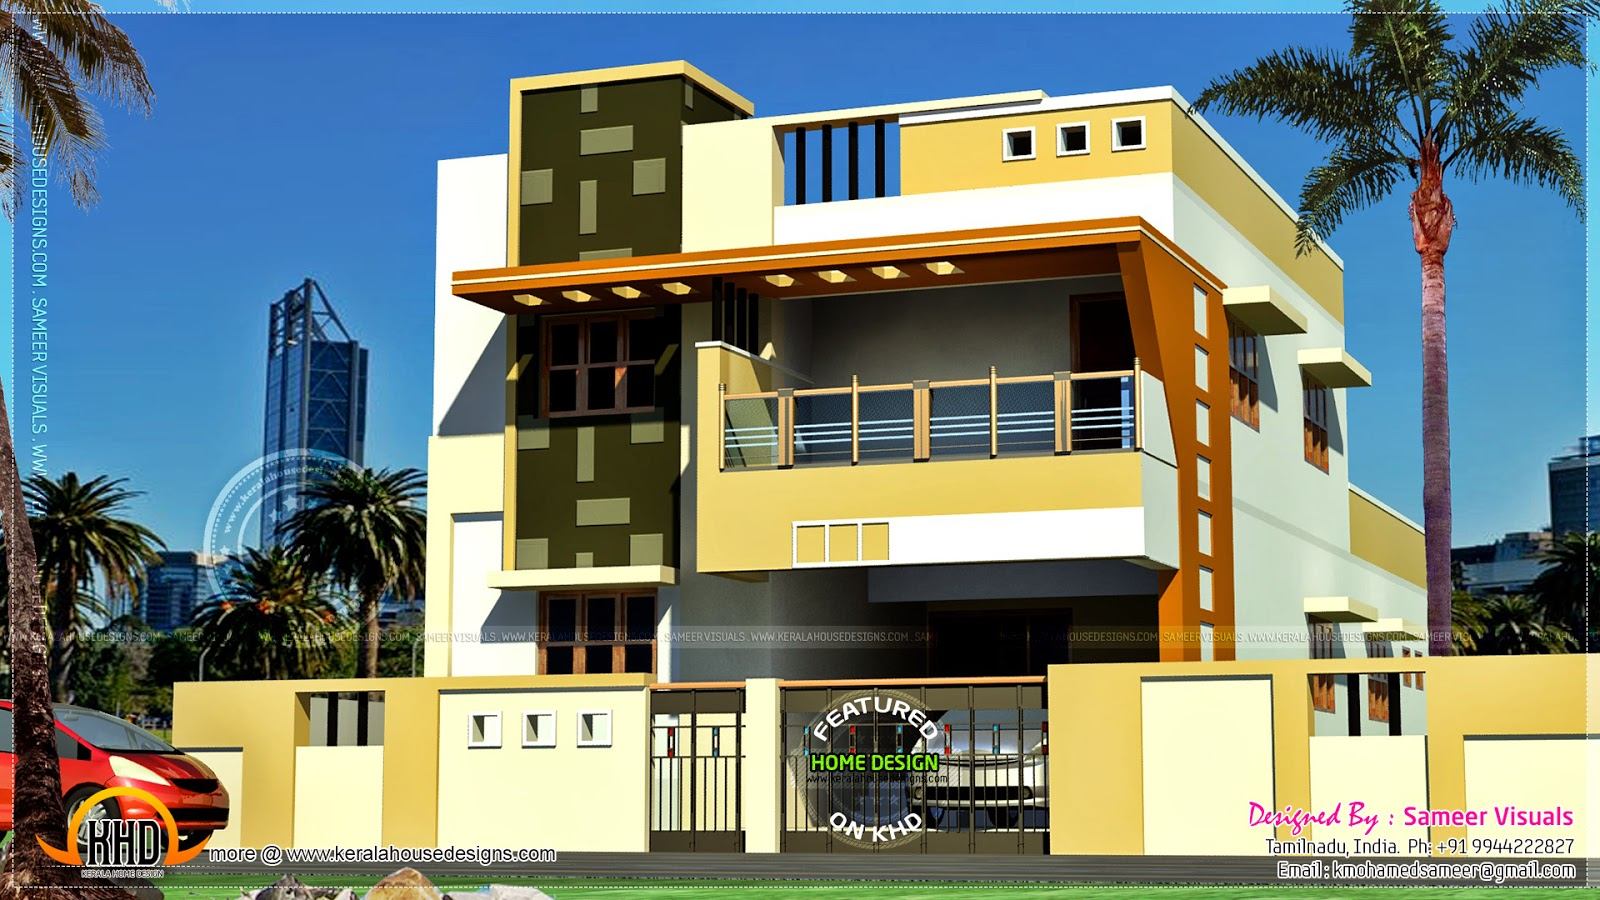 Modern south indian house design kerala home design and for Indian house model